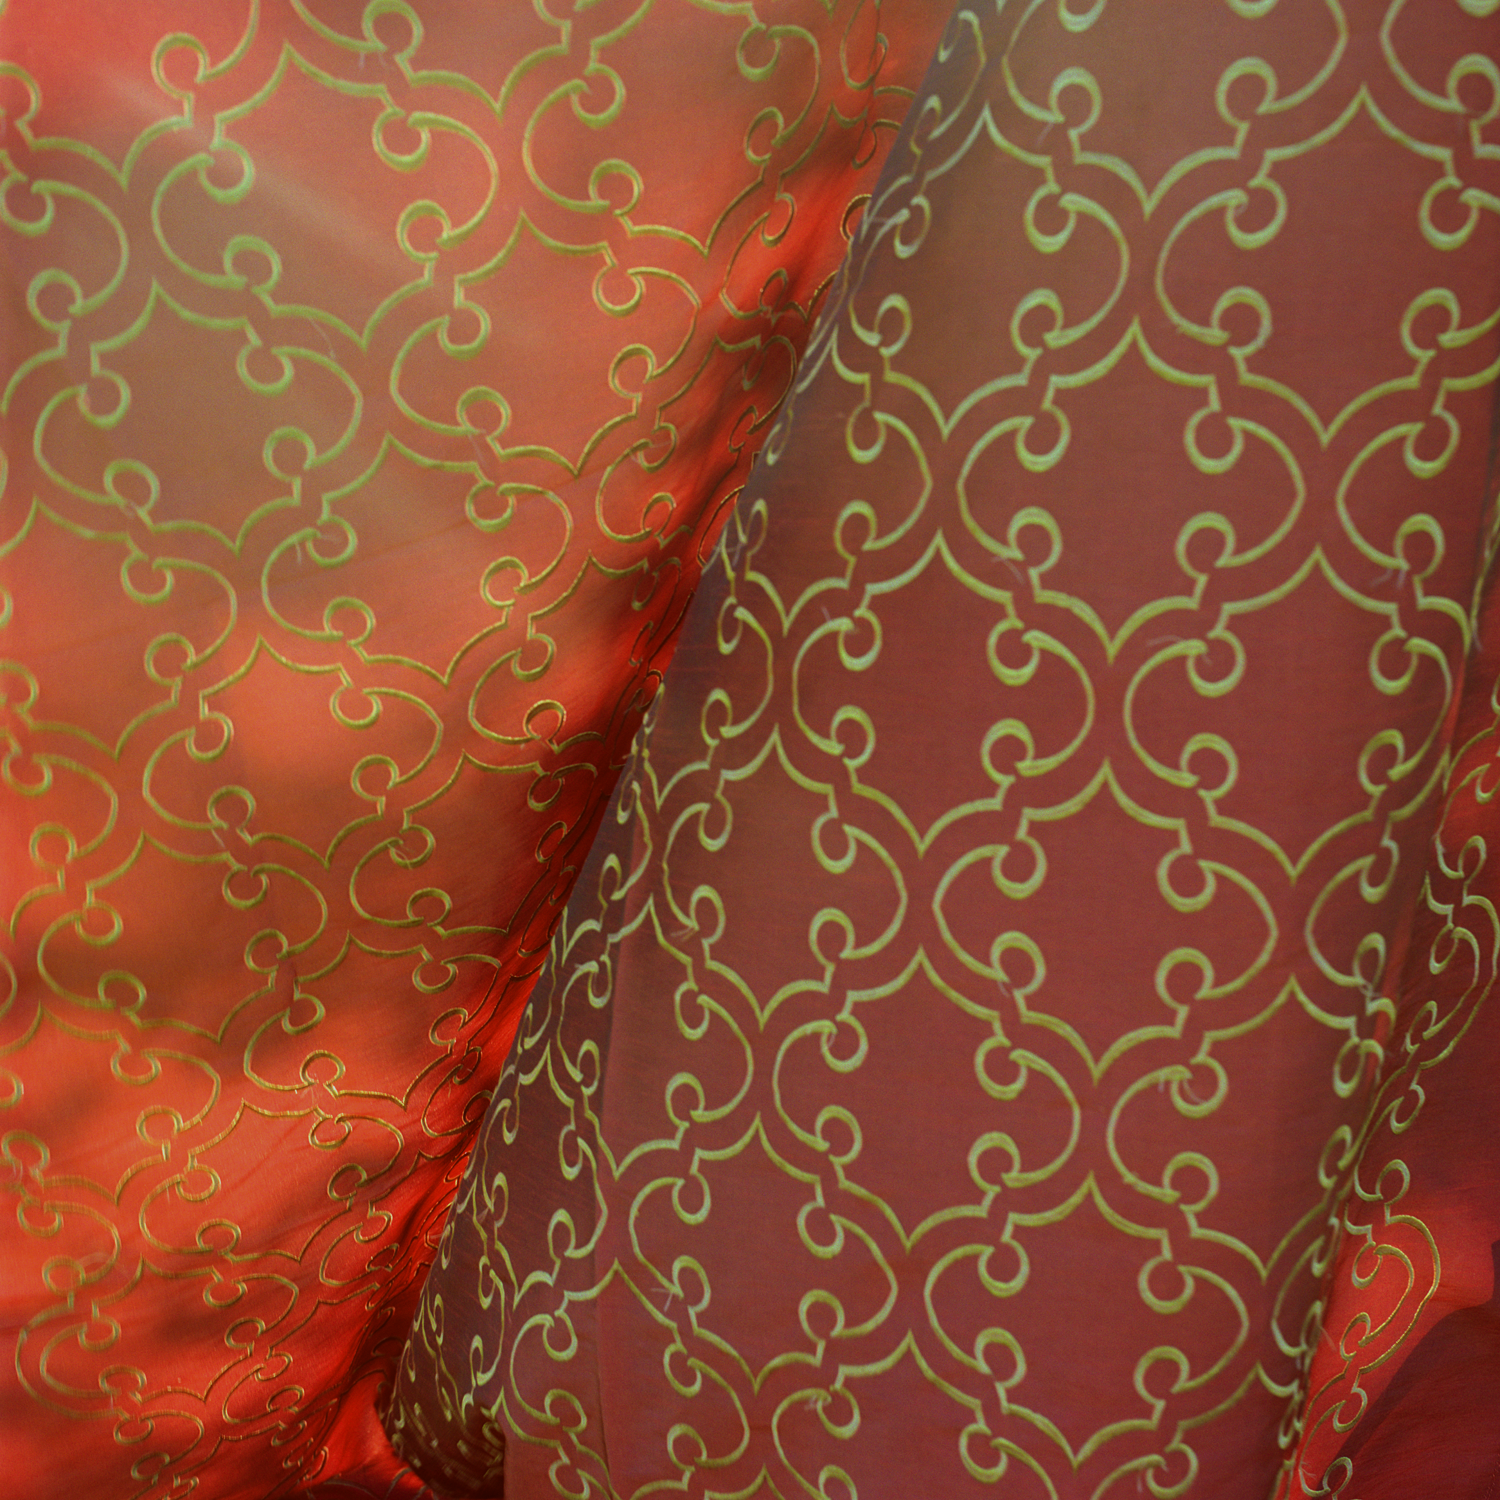 Red Floral 2.png